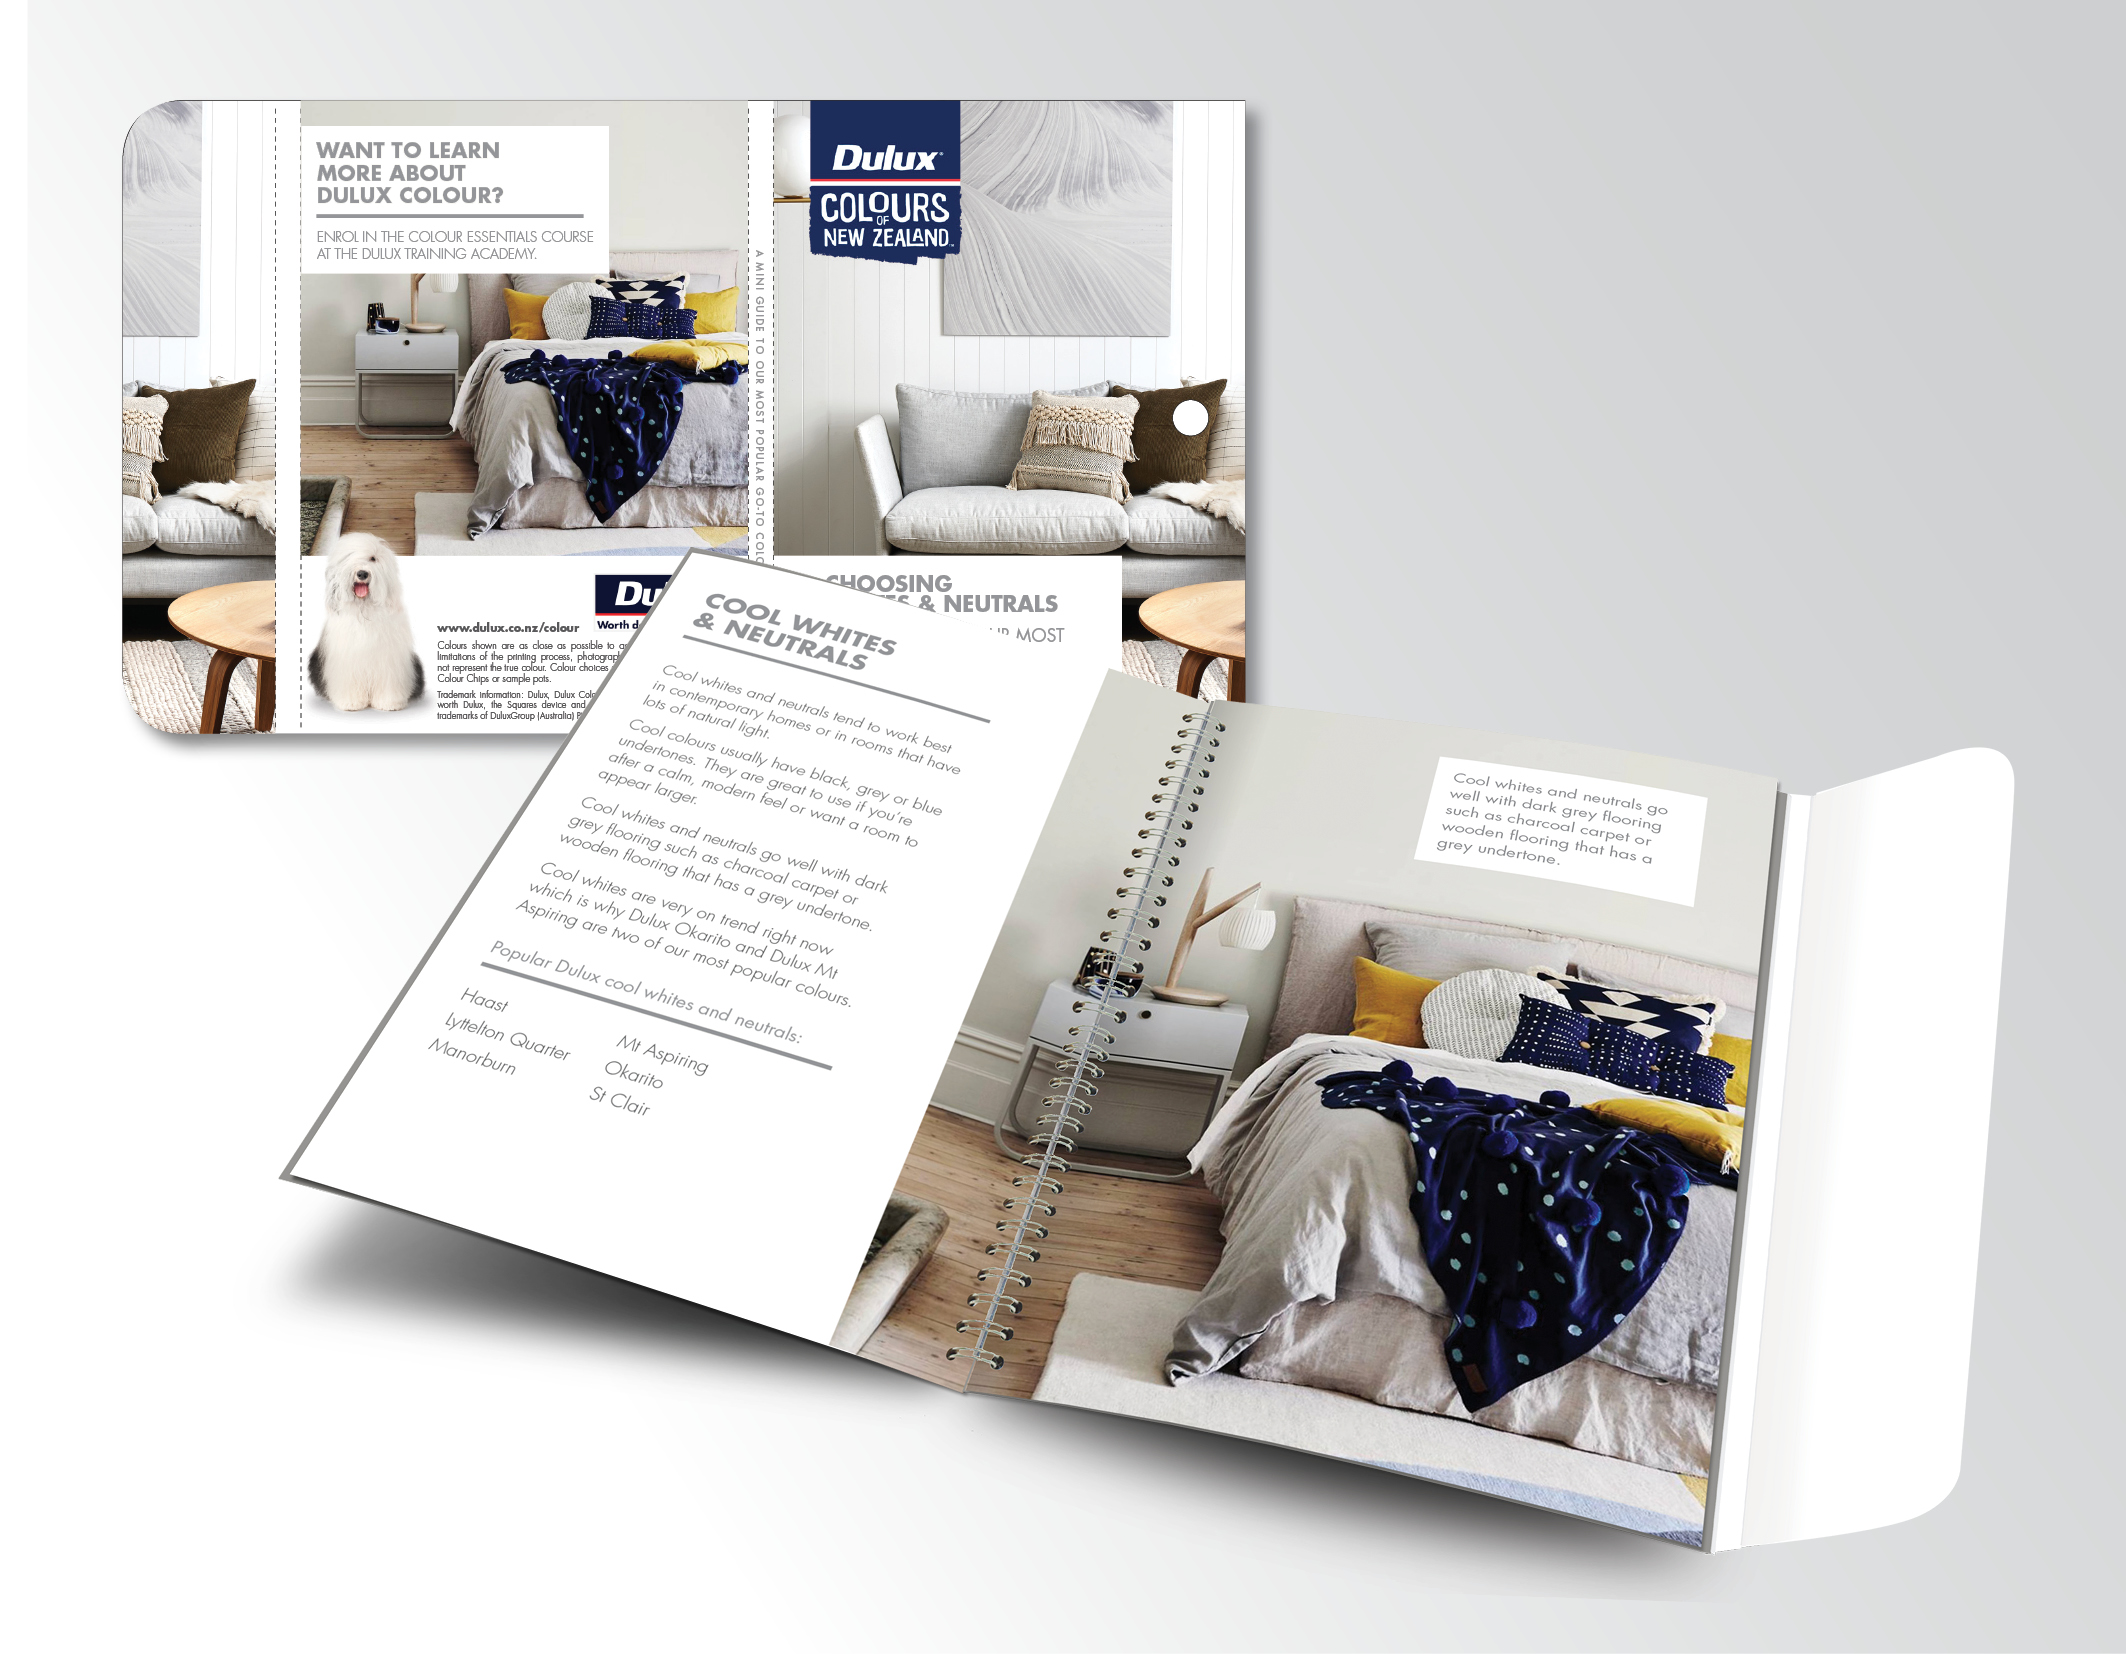 DULUX POCKET COLOUR   Creating a useful retail sales tool